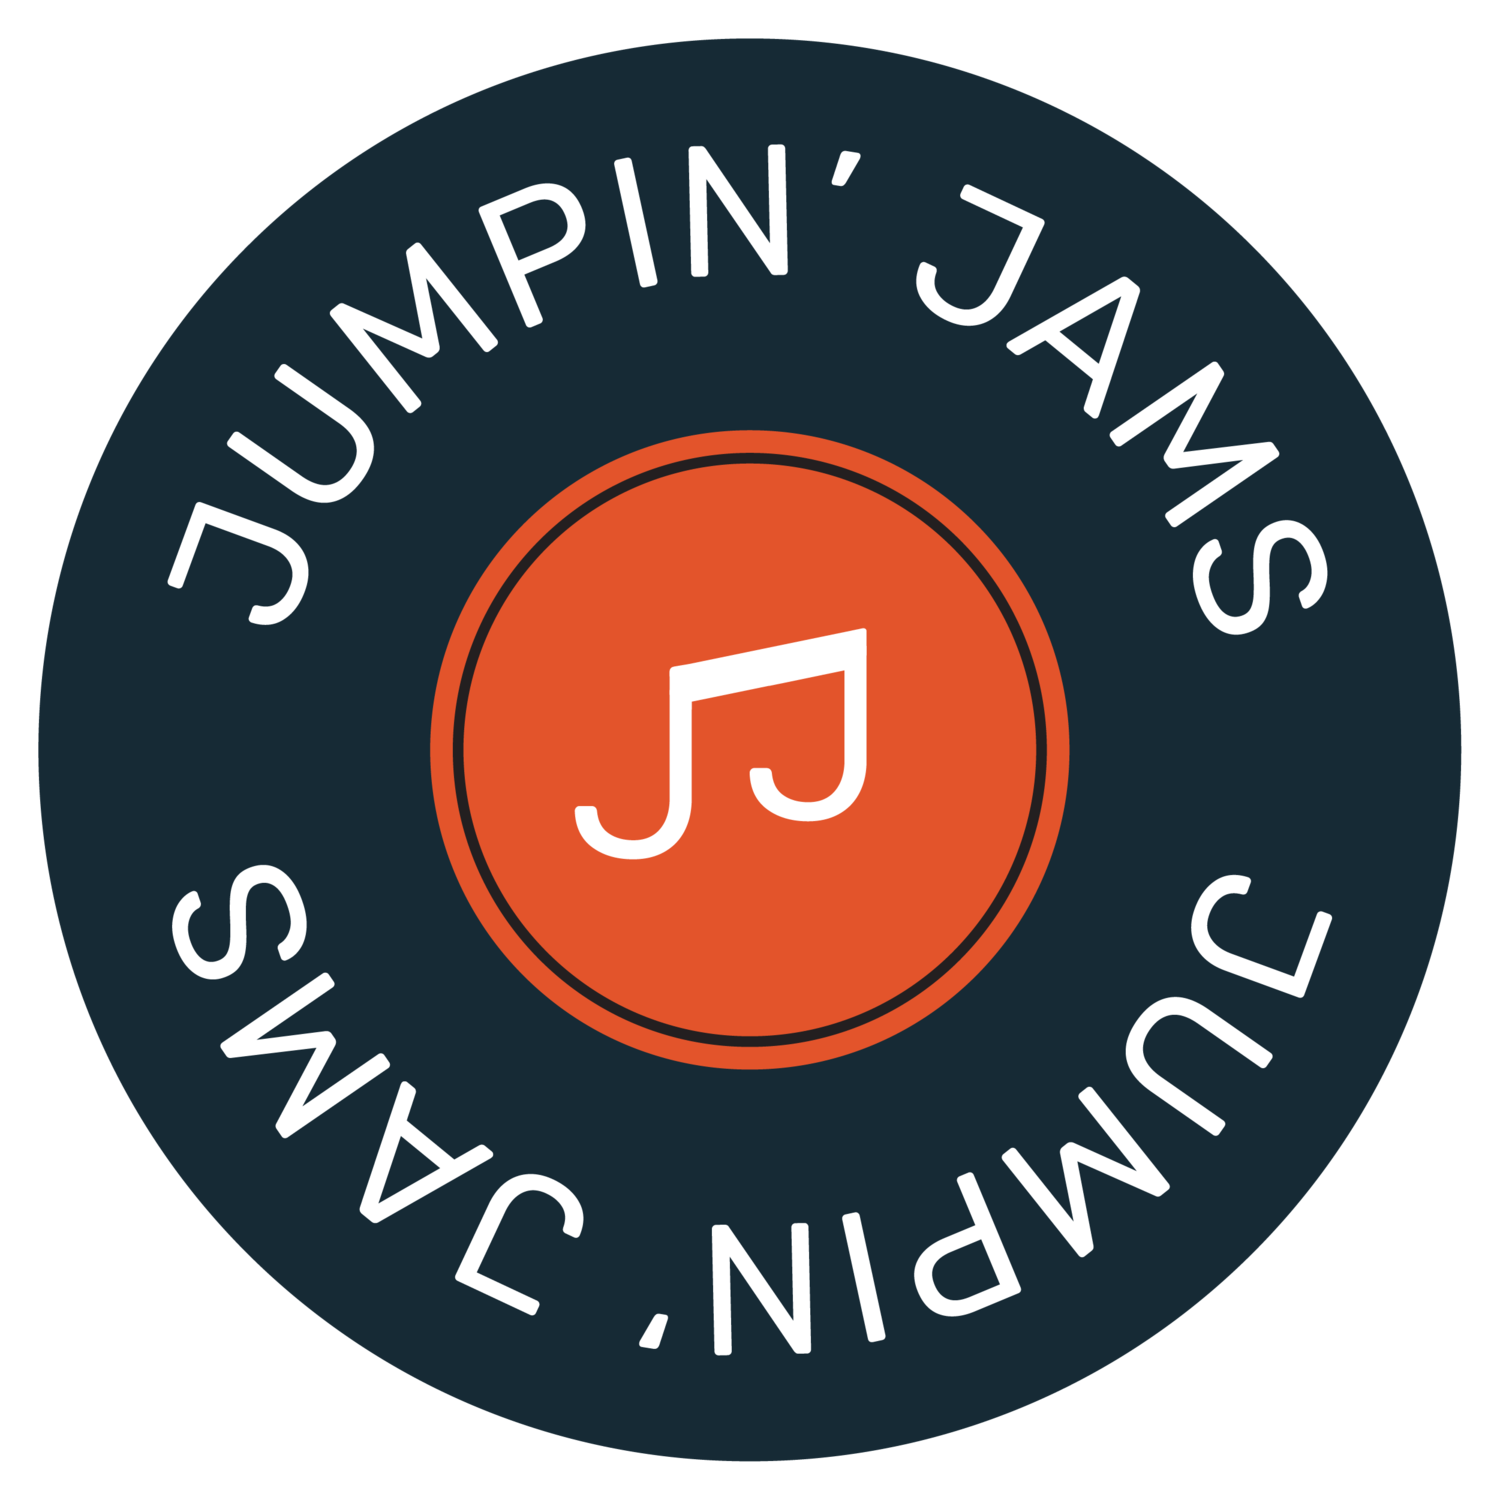 Jumpin' Jams - Hoppin' Kids Music Classes in Fairfield County, CT